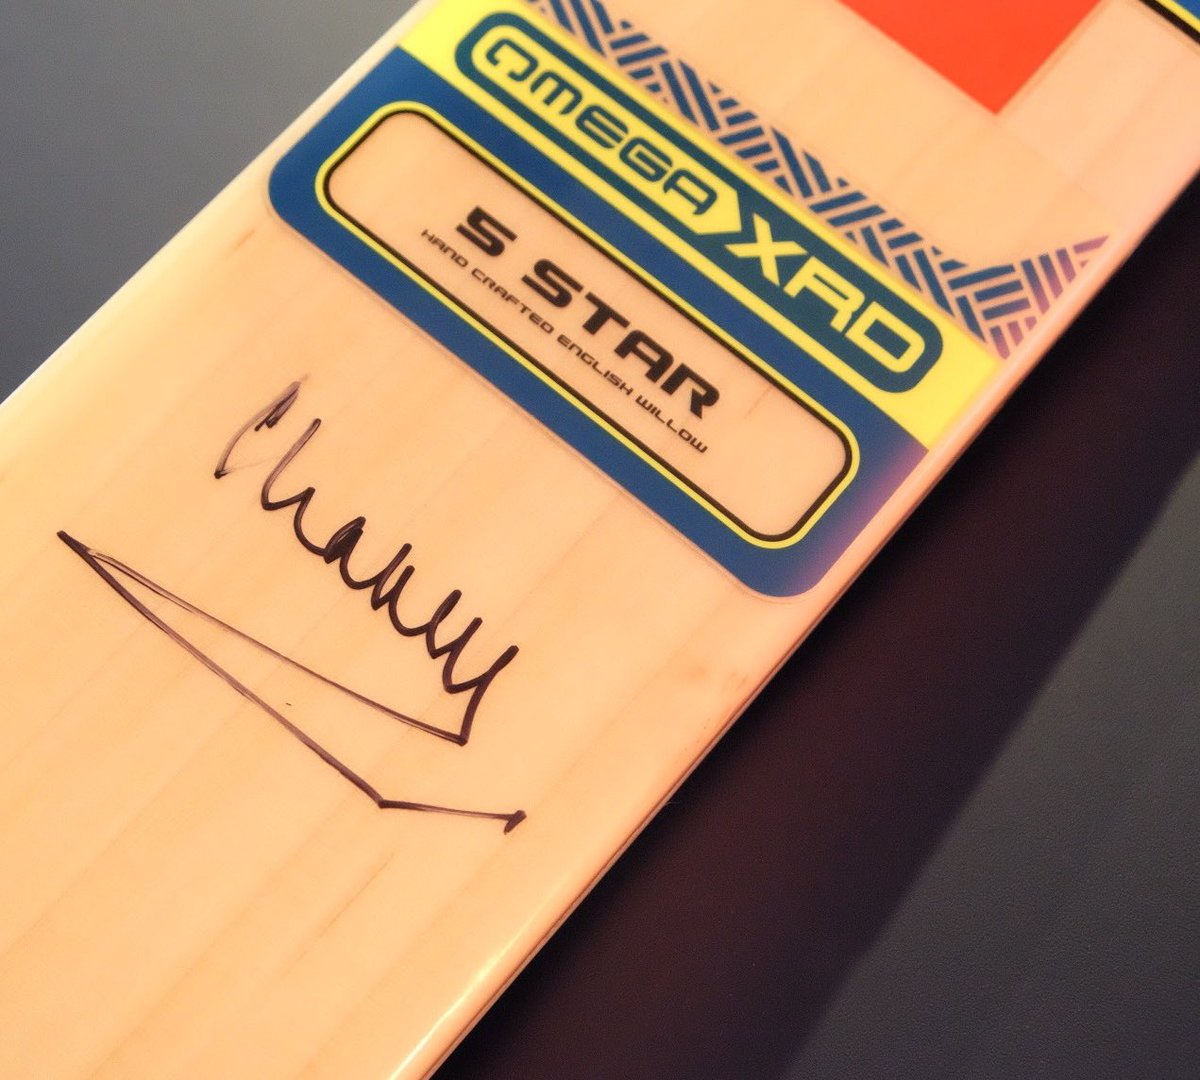 Before departing, HRH signed a cricket bat that will eventually be signed by all team captains from the 8 nations taking part in #CT17.